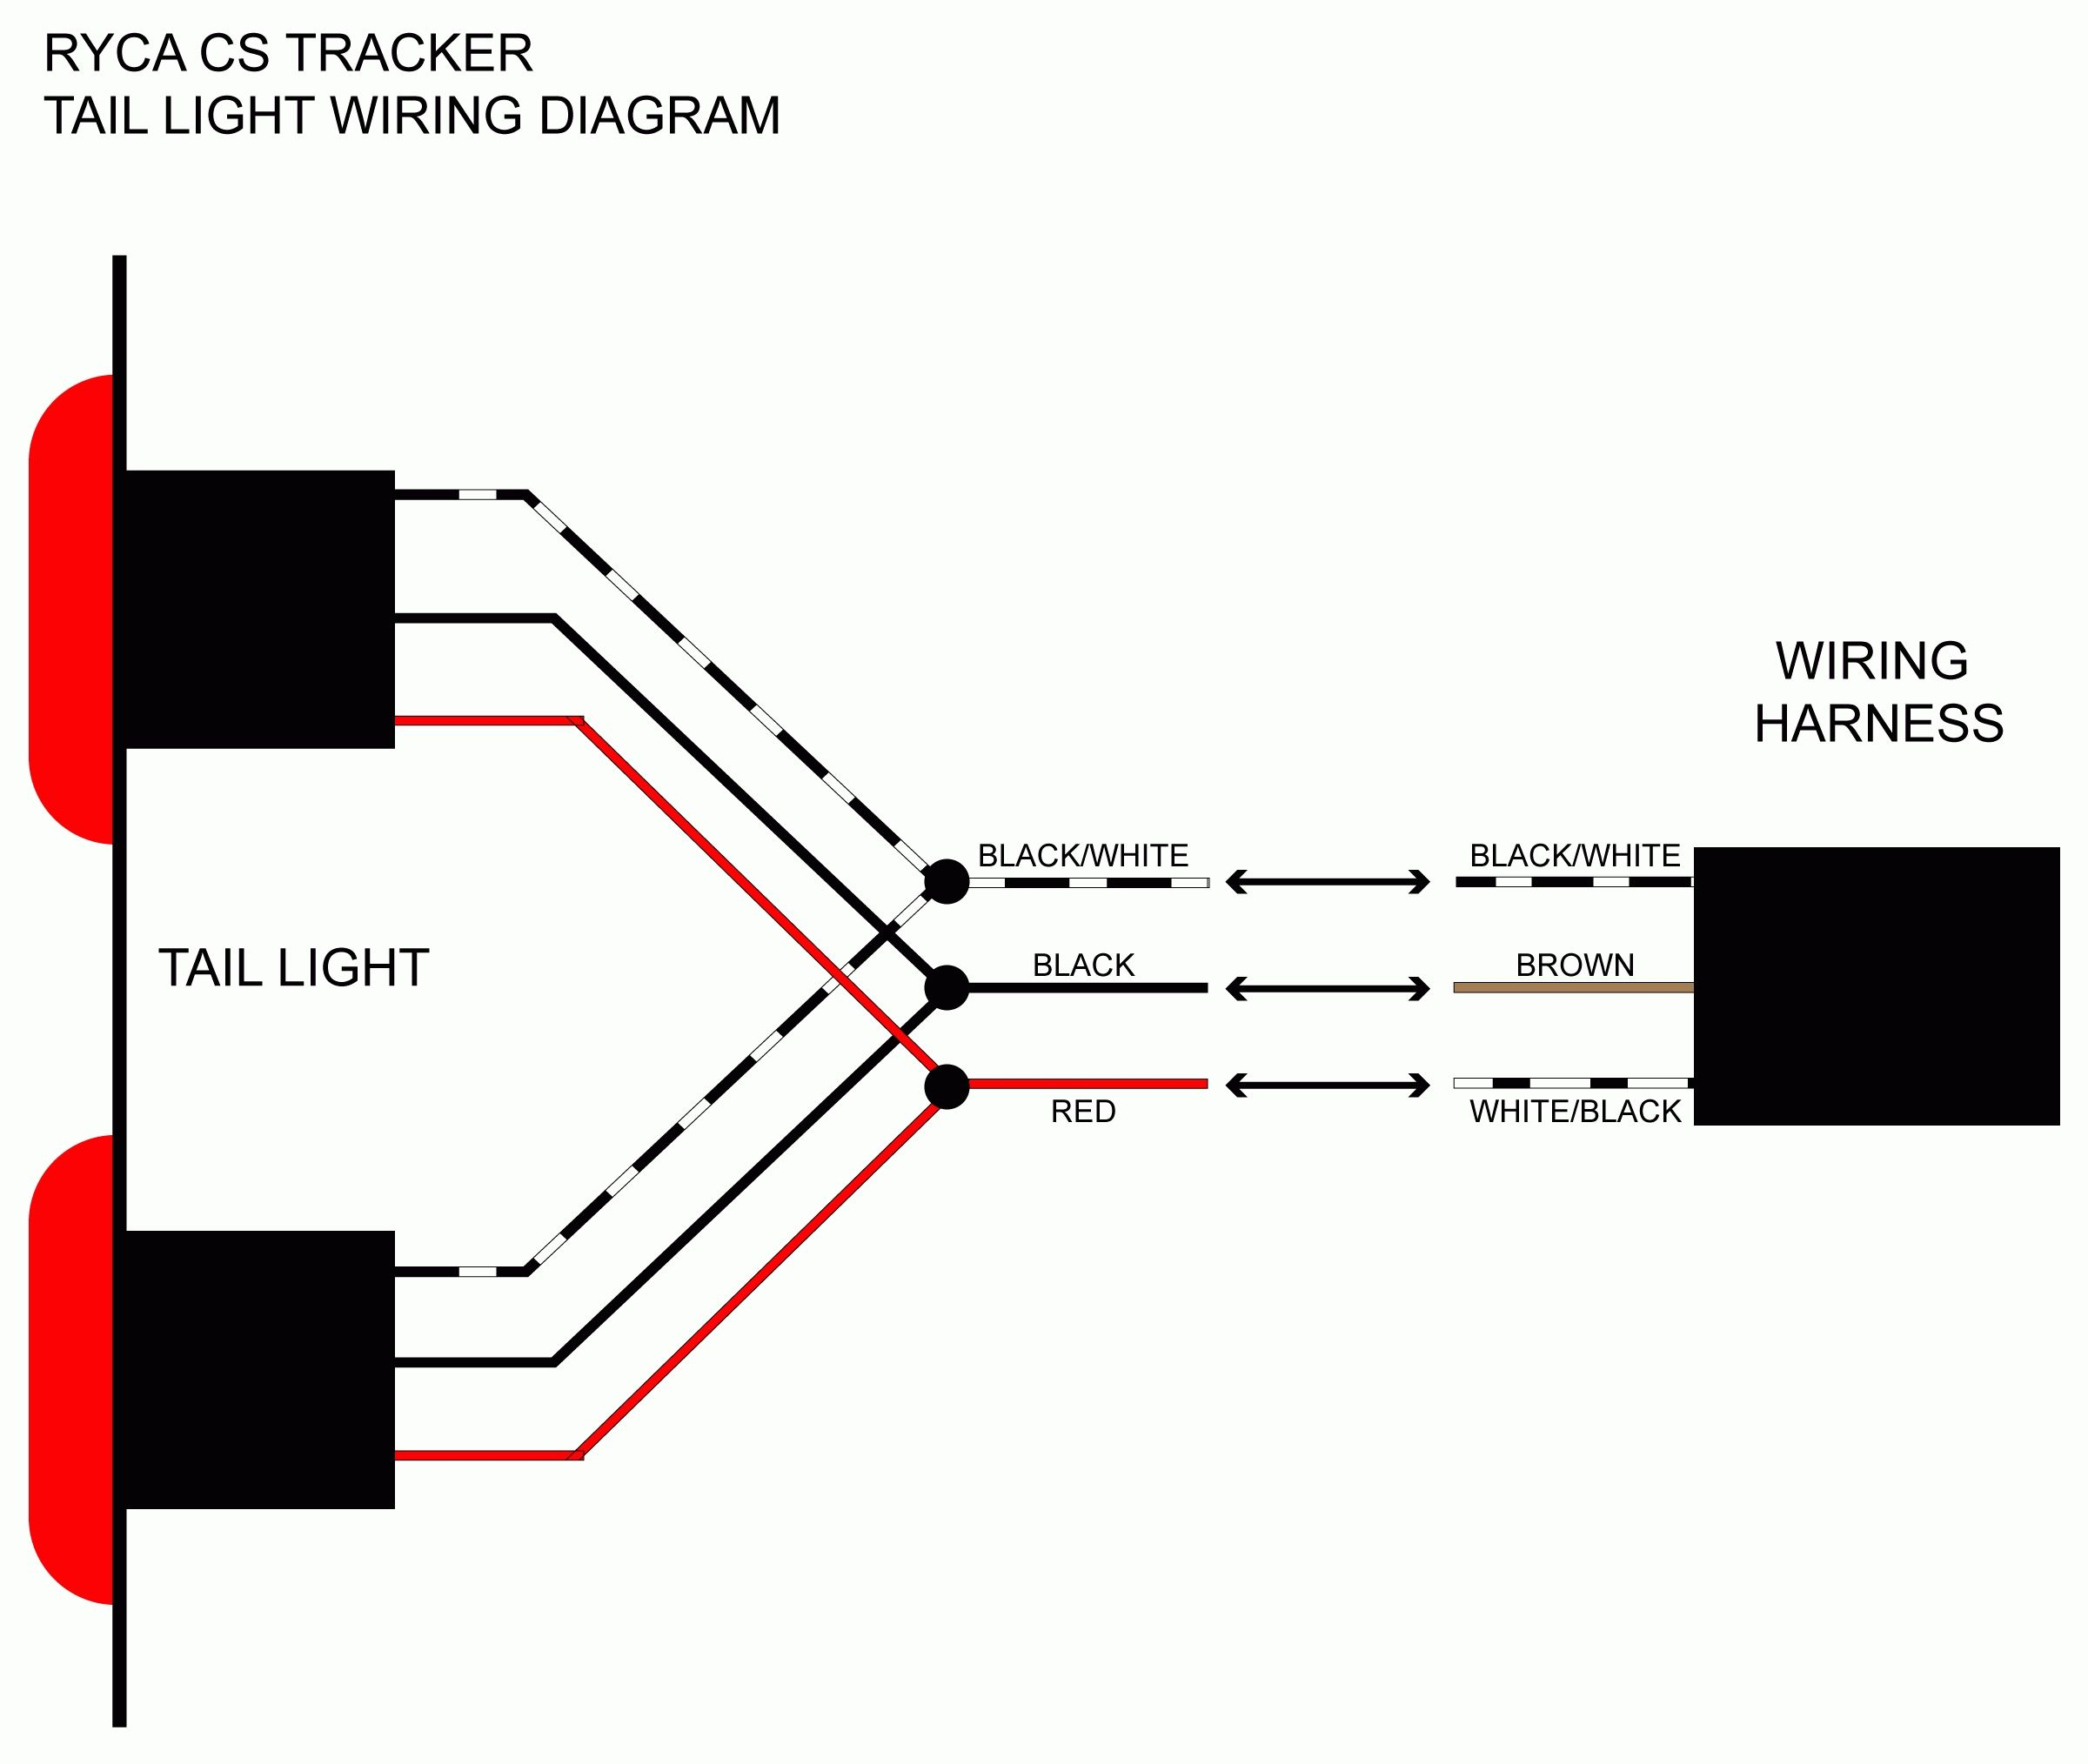 3 tail light wire diagram wiring diagram directory Mazda 3 Light Wiring Diagram tow vehicle wiring diagram valid mazda